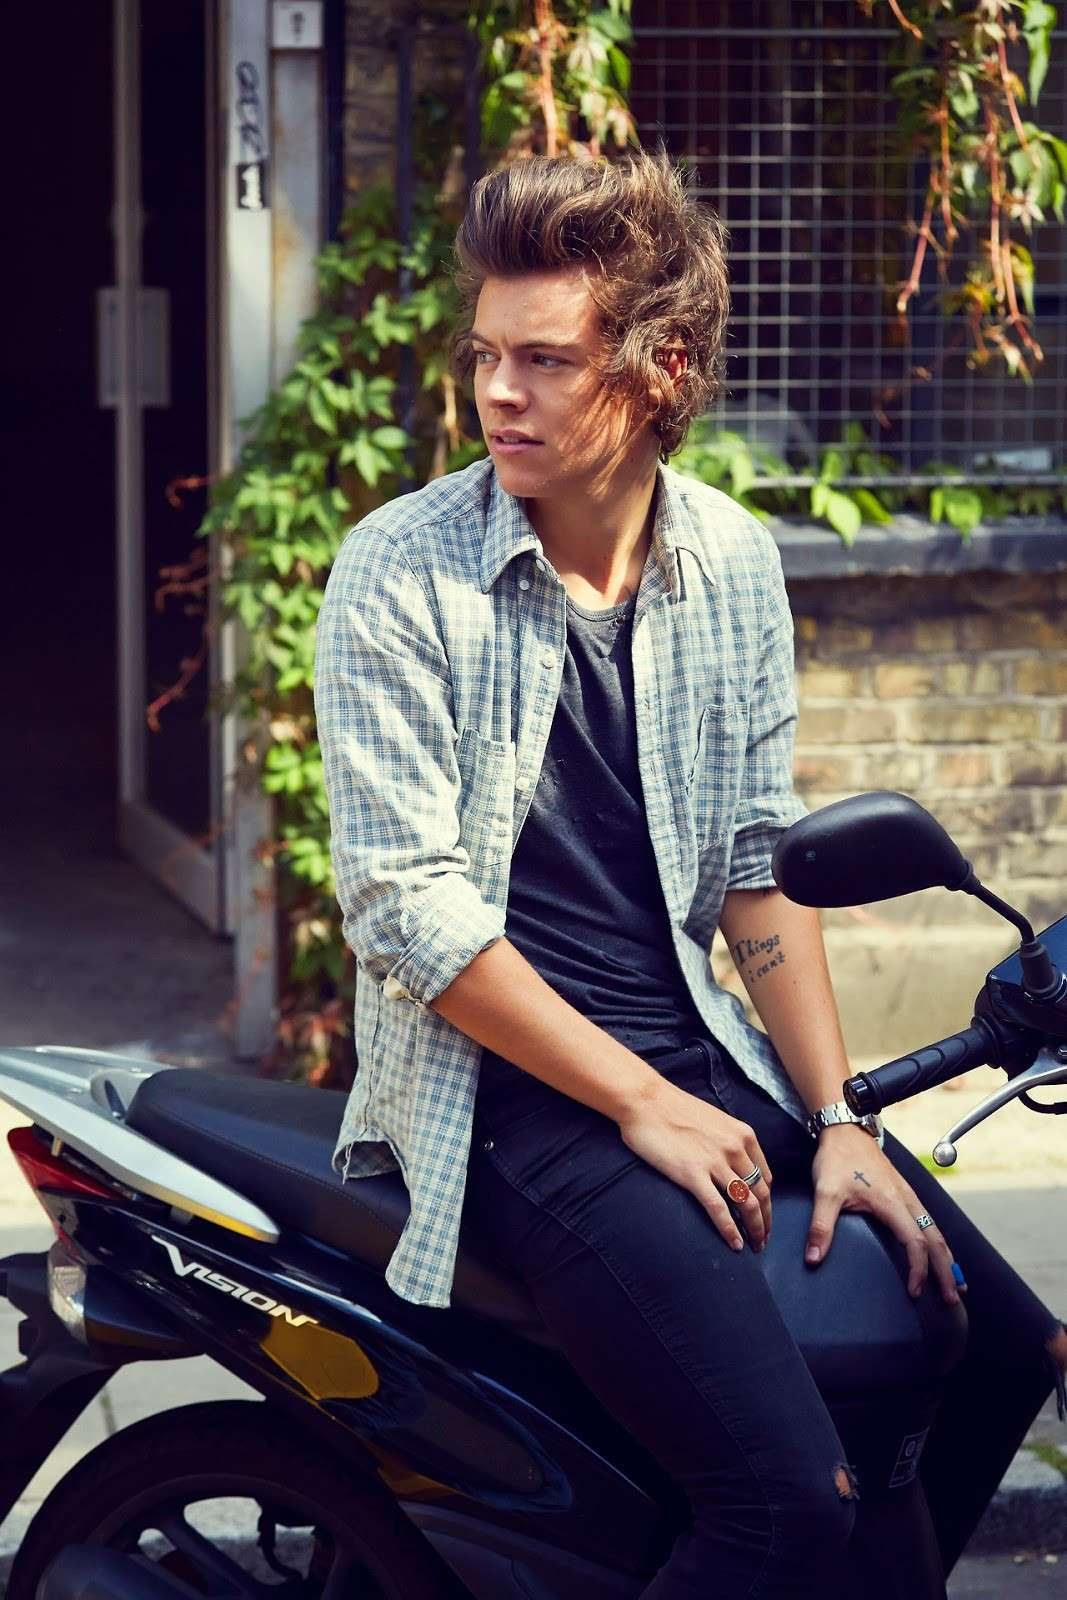 Harry Styles in scooter